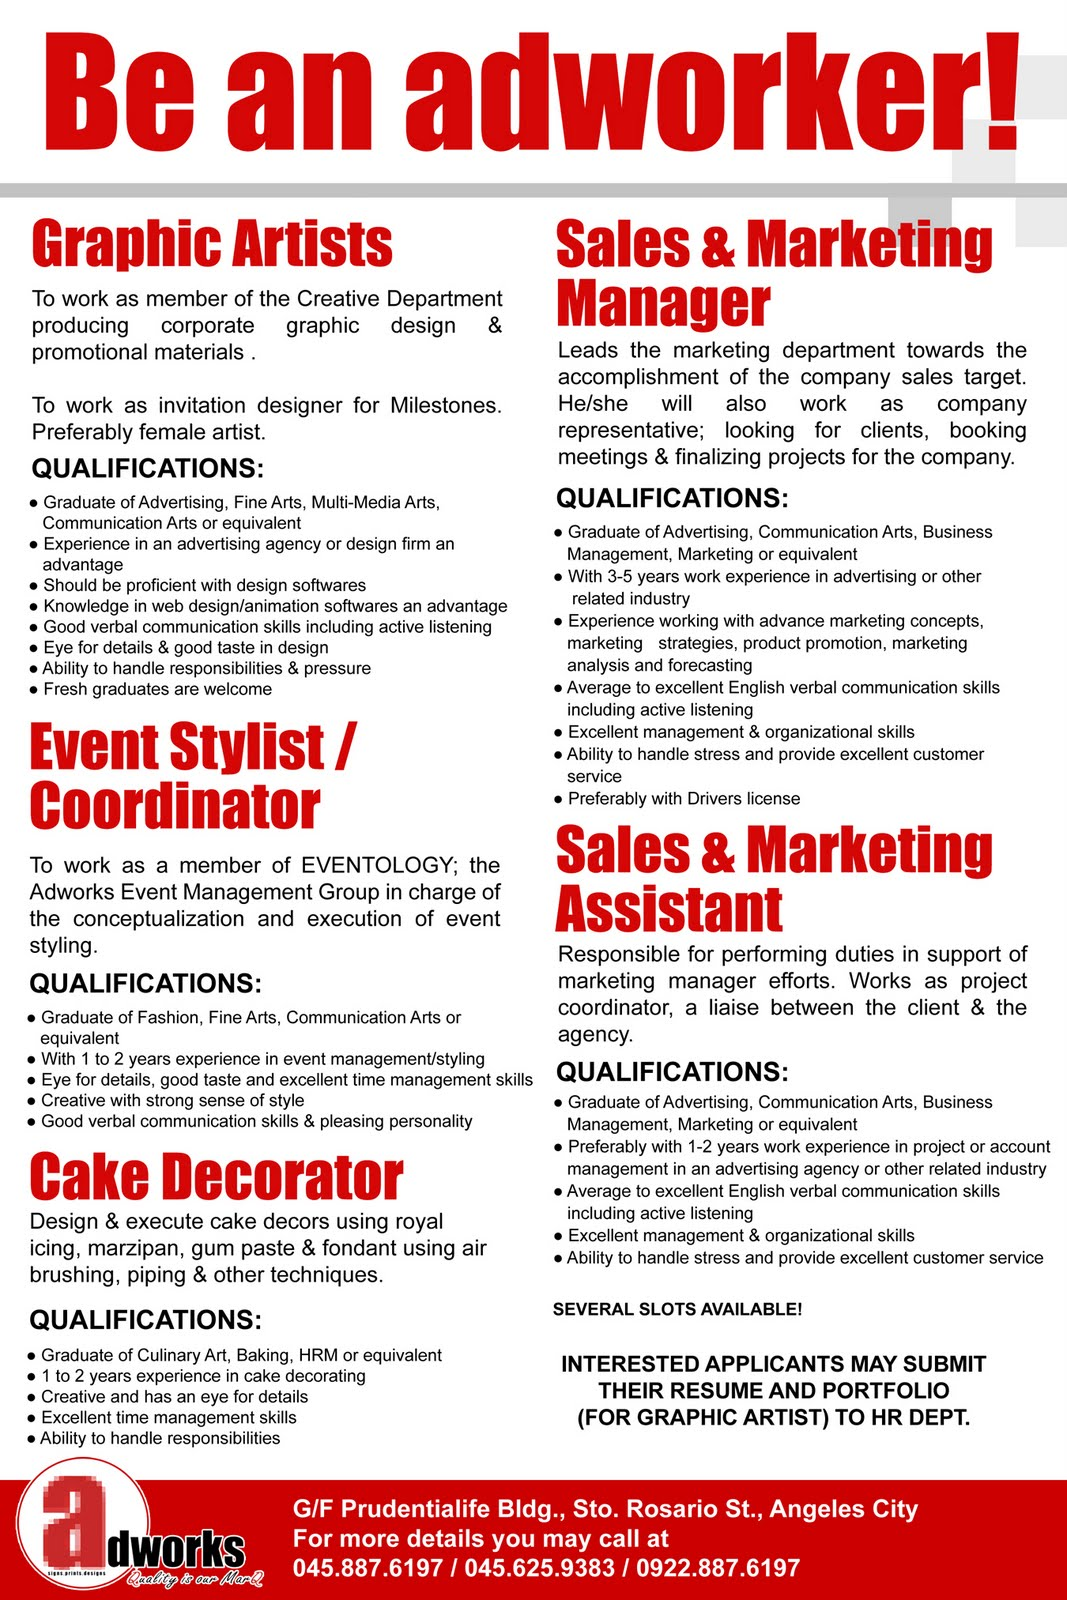 adworks career opportunities s marketing manager